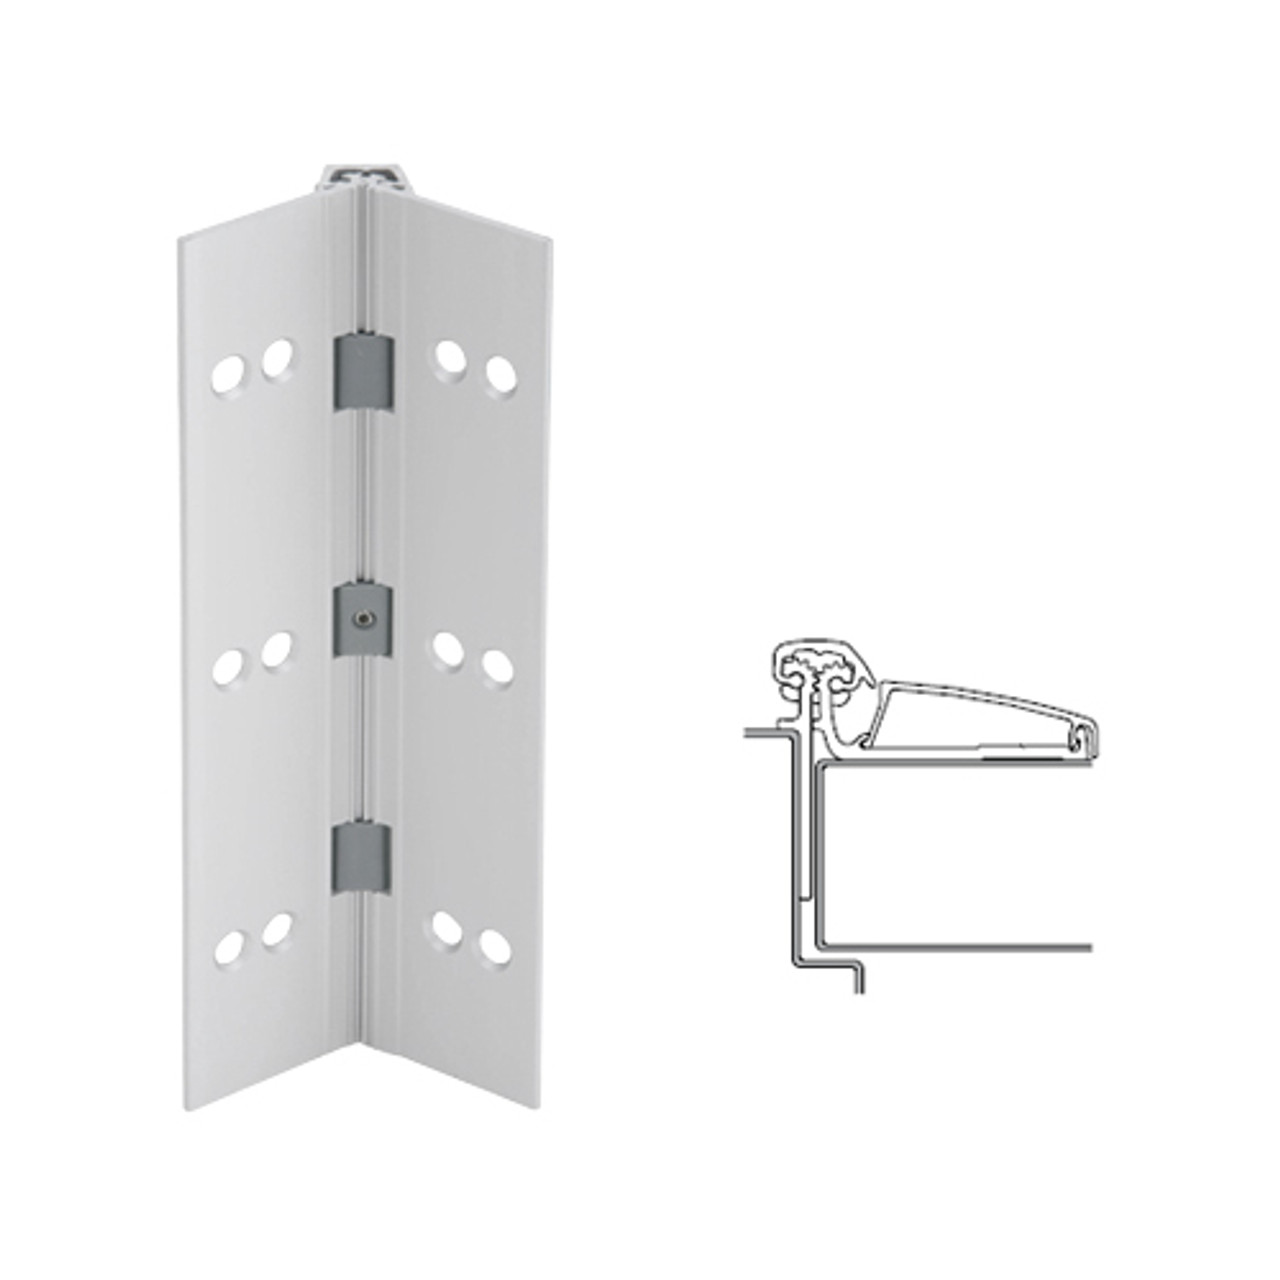 045XY-US28-83-TFWD IVES Adjustable Half Surface Continuous Geared Hinges with Thread Forming Screws in Satin Aluminum